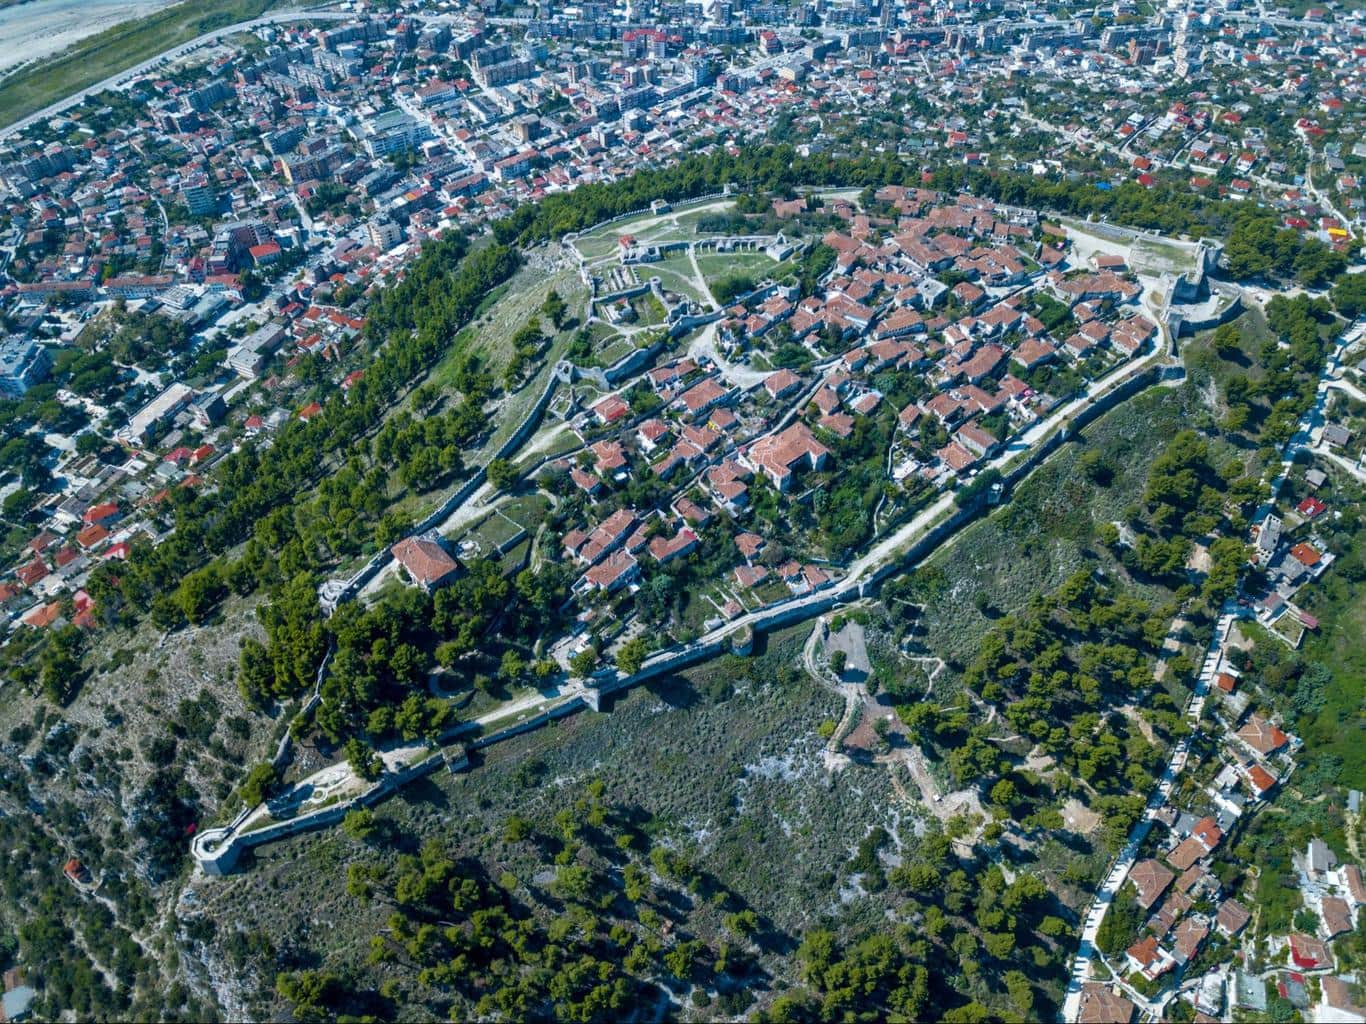 Berat Castle from above